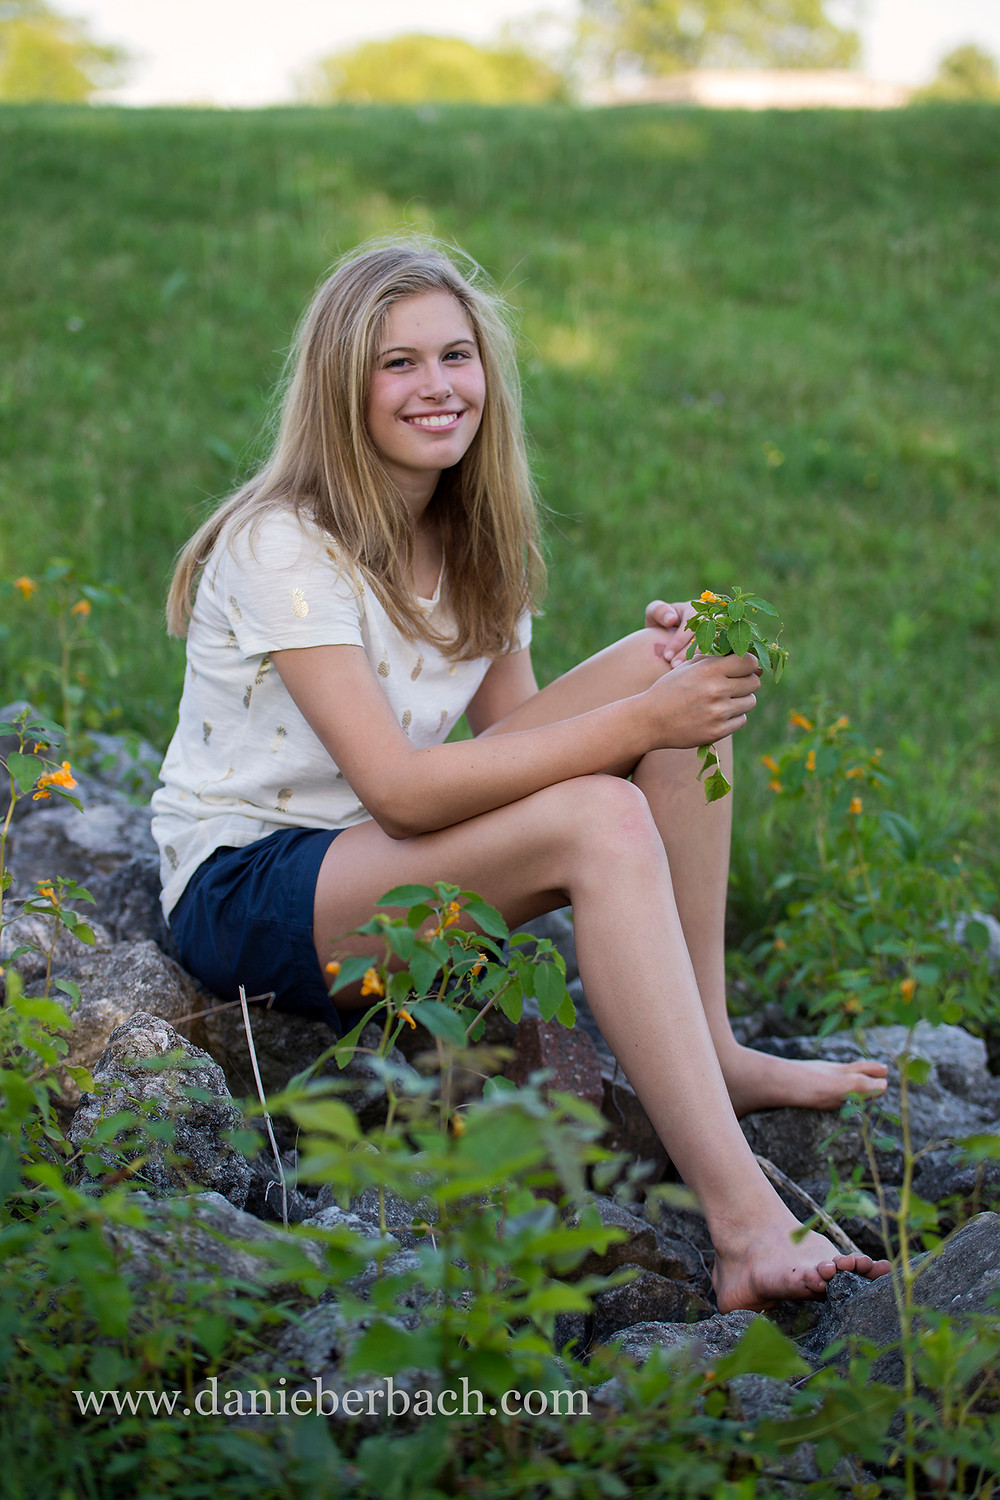 Young female portrait sitting outdoors with wildflowers